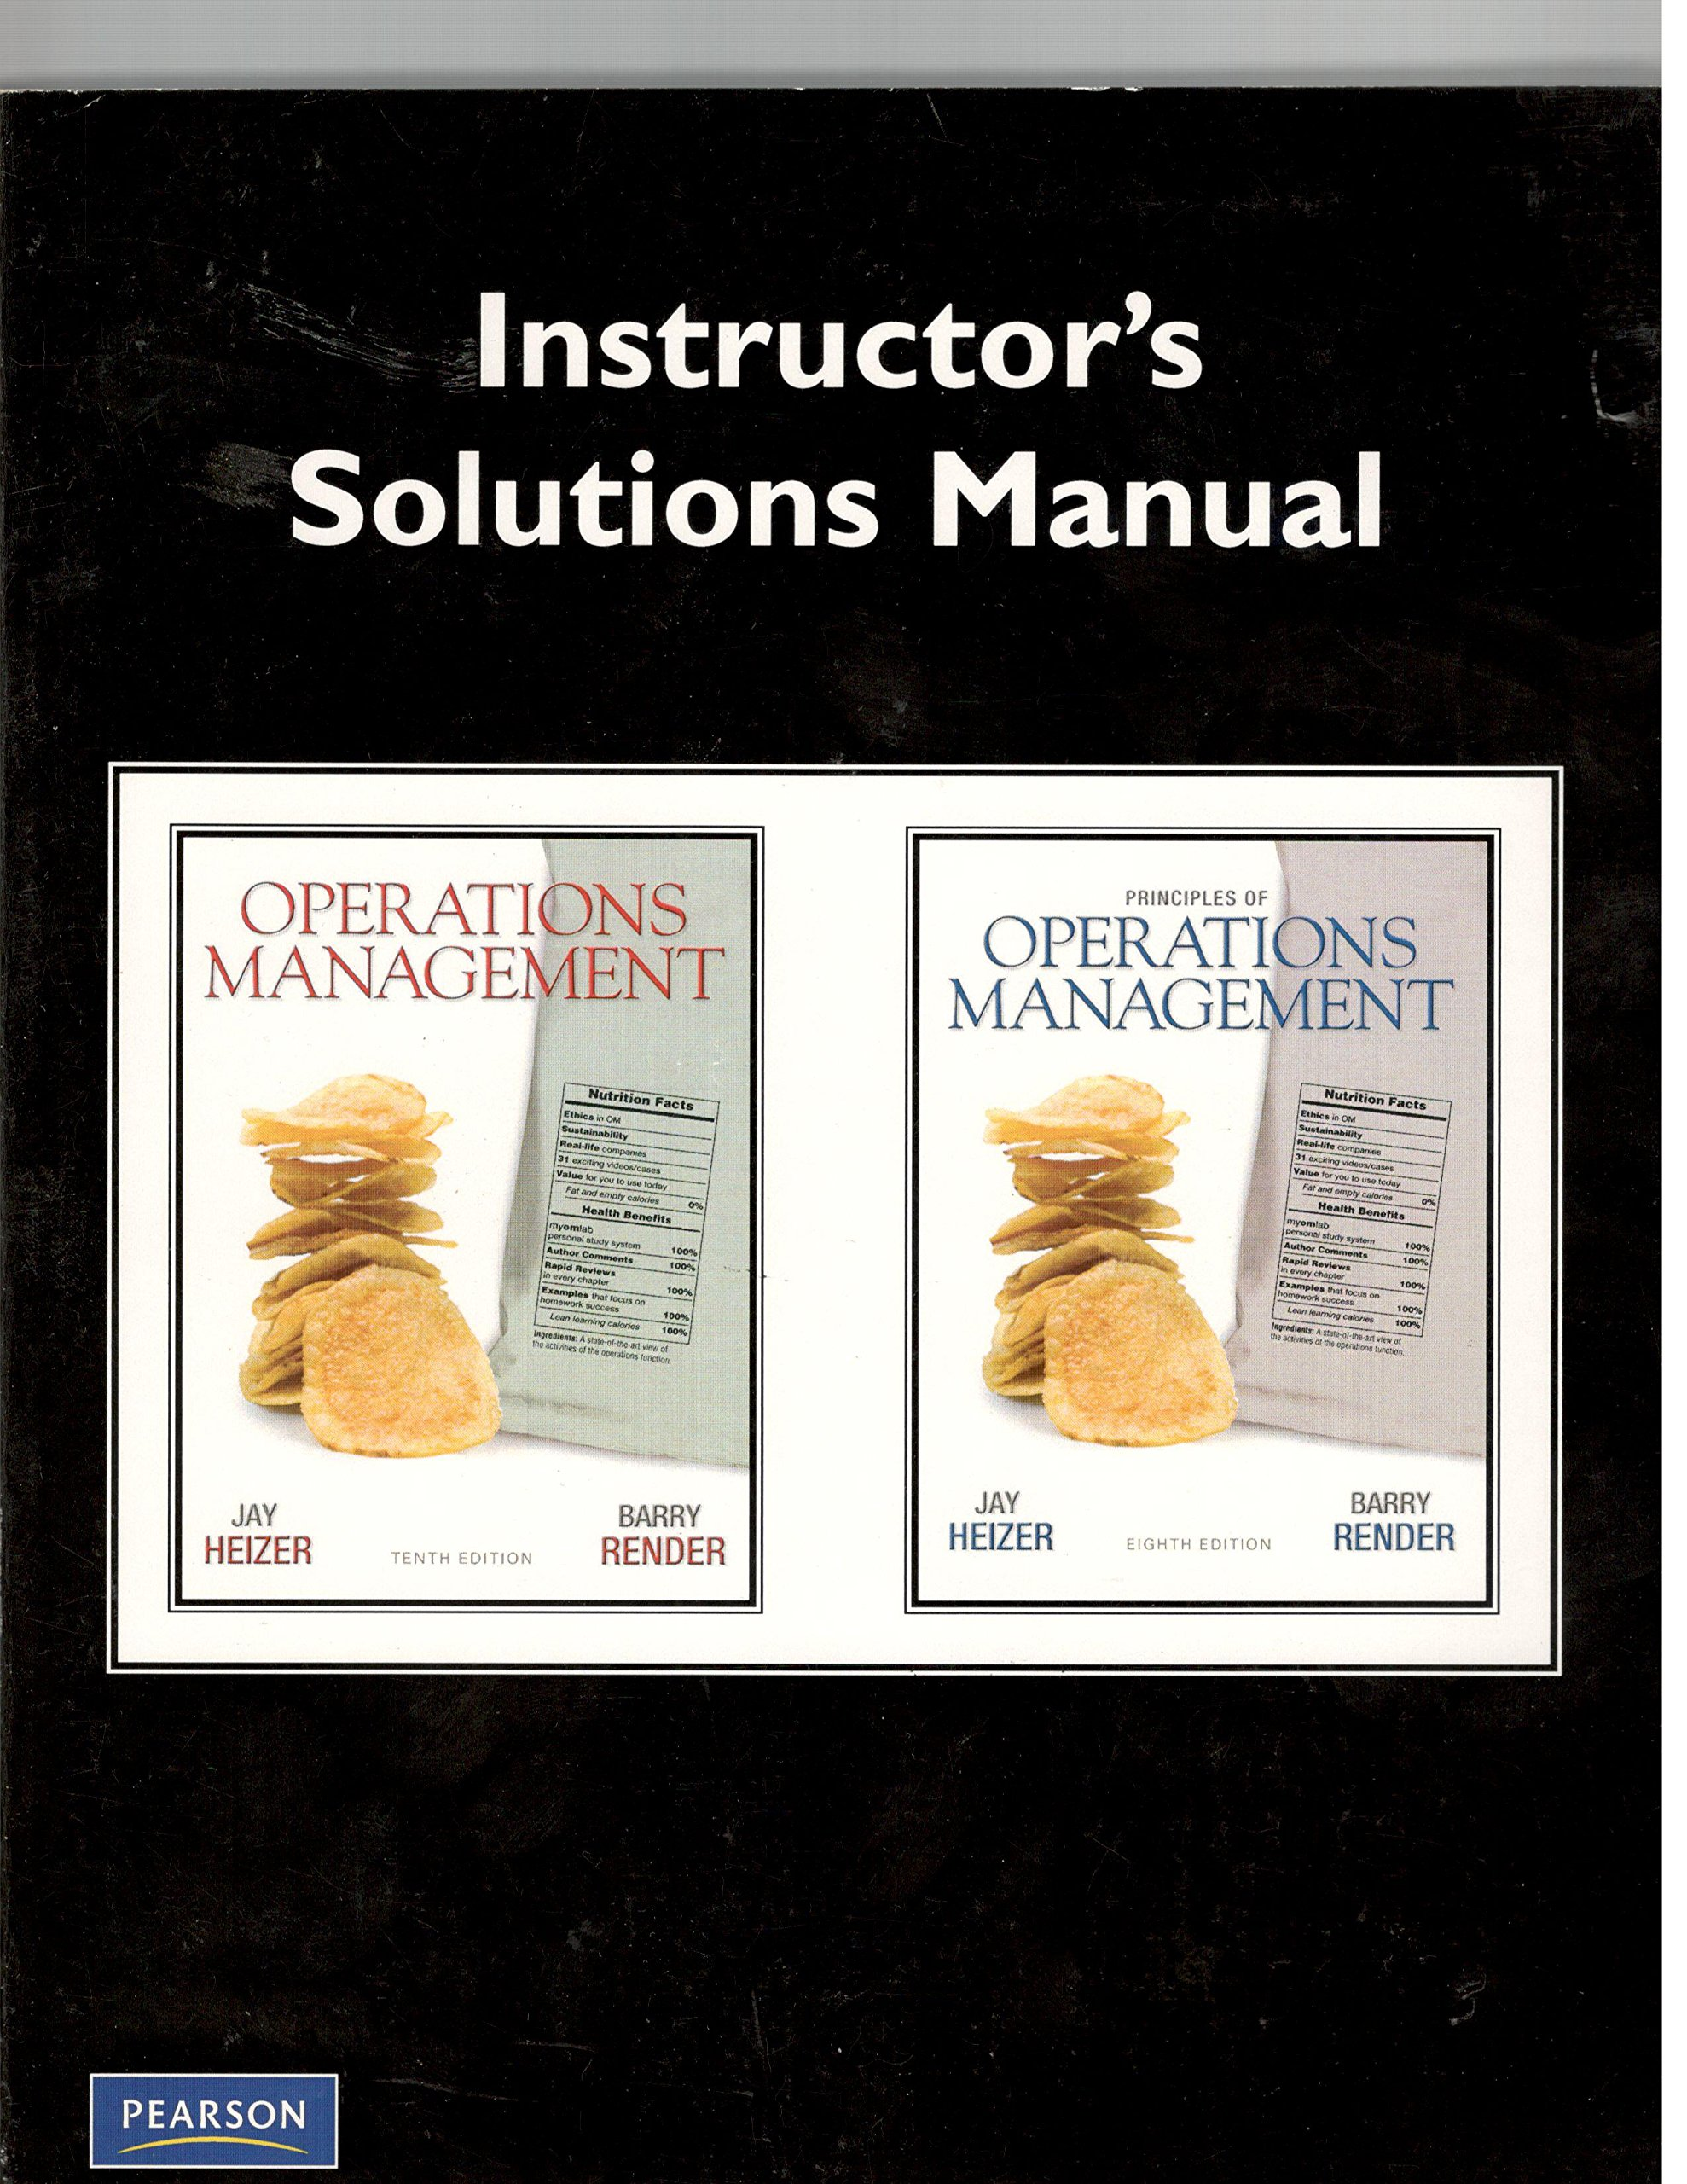 Instructor's Solutions Manual for Principles of Operations Management: Jay  Heizer, n/a: 9780135107201: Amazon.com: Books